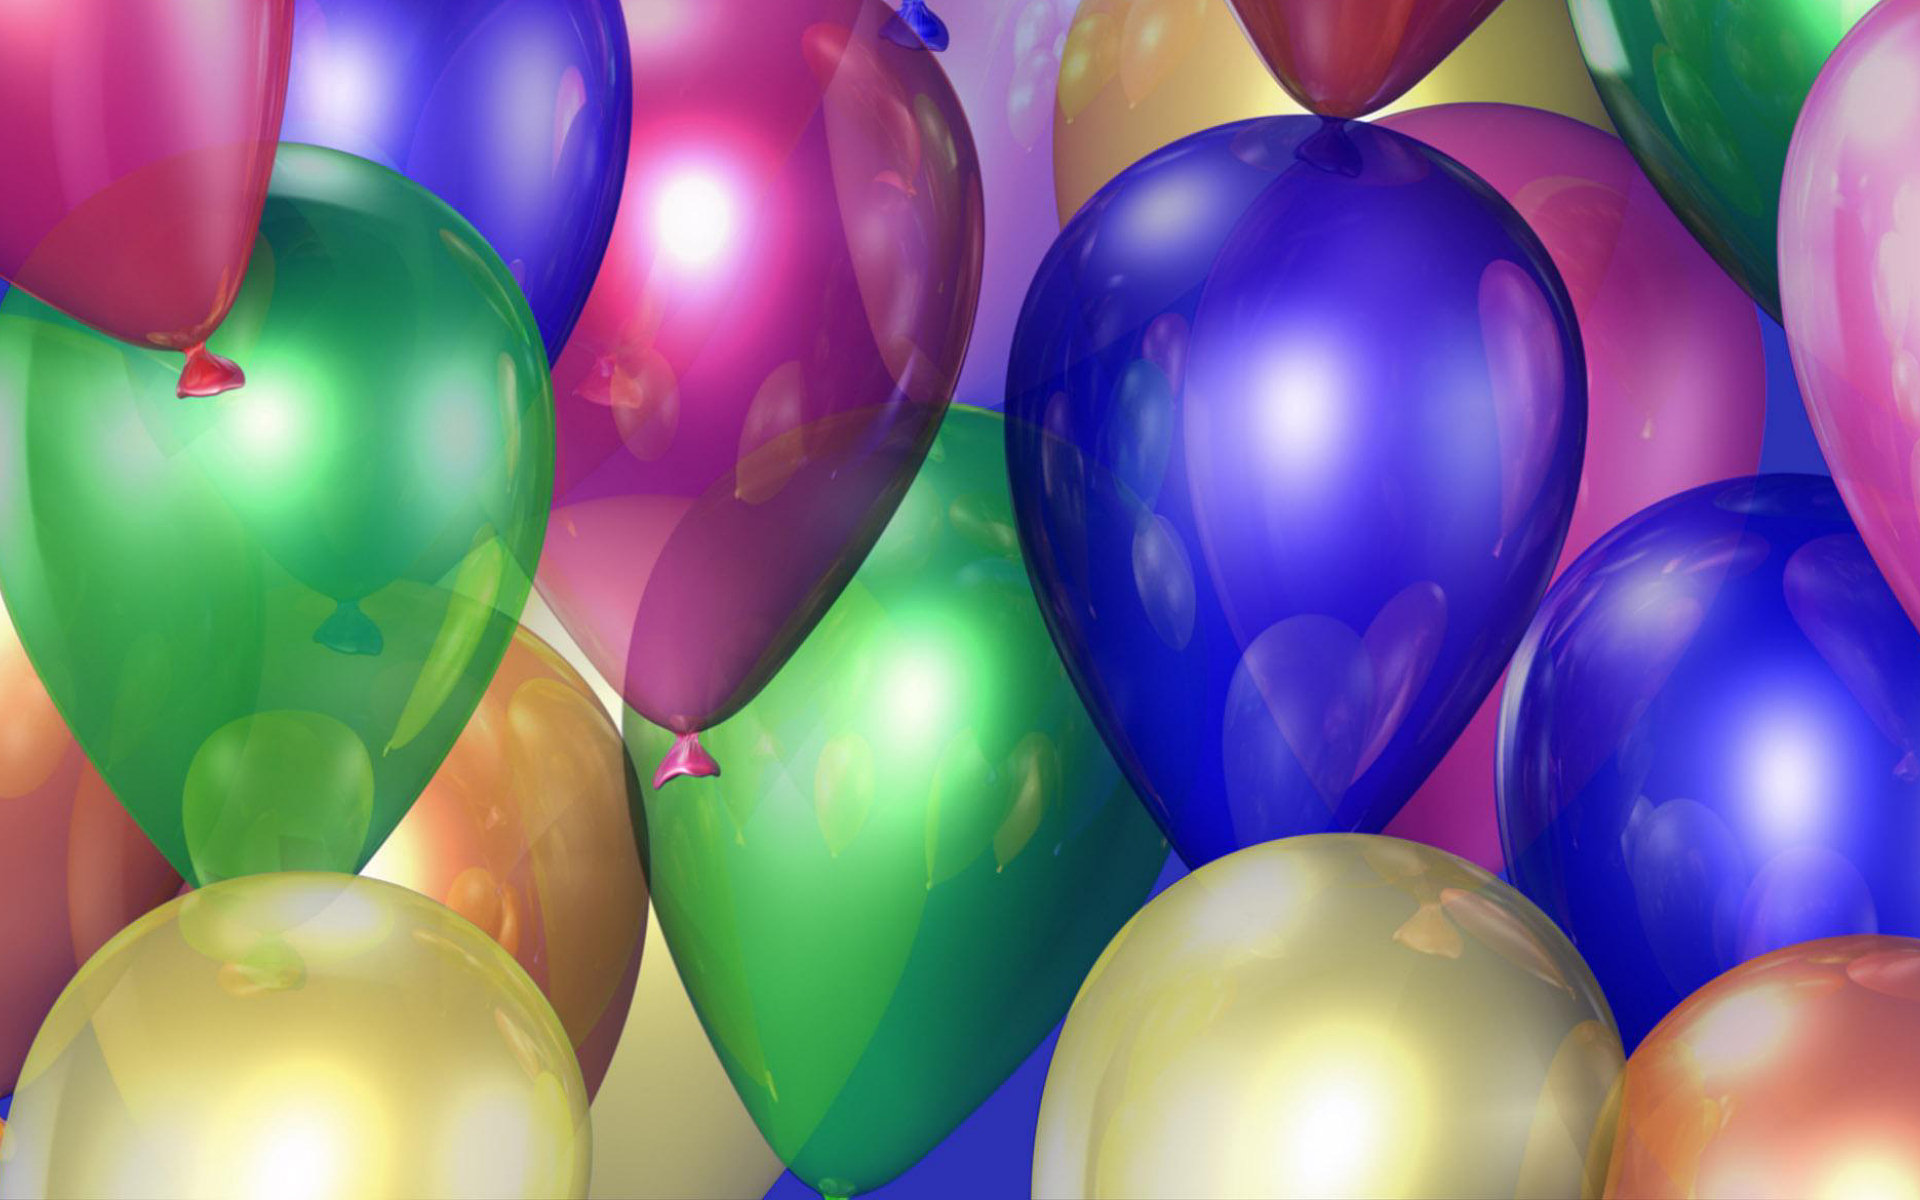 Balloons hd wallpaper background image 1920x1200 id - Happy birthday balloon images hd ...